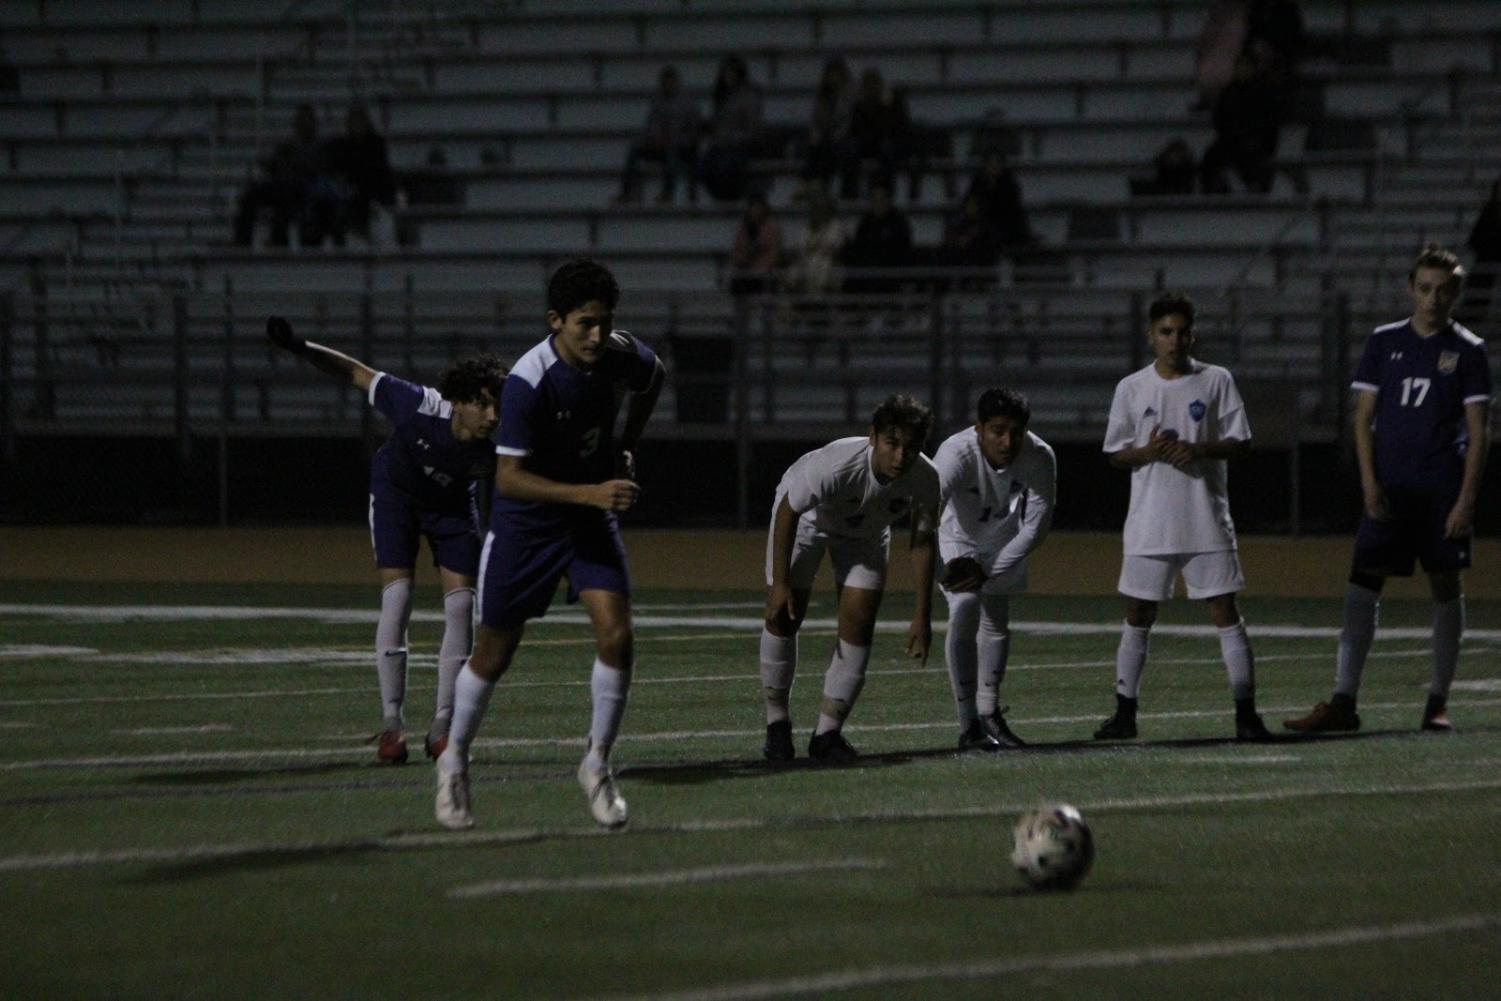 Junior Jayden Sanchez goes in for a penalty shot against Chino High School while teammates anticipate a scored goal.